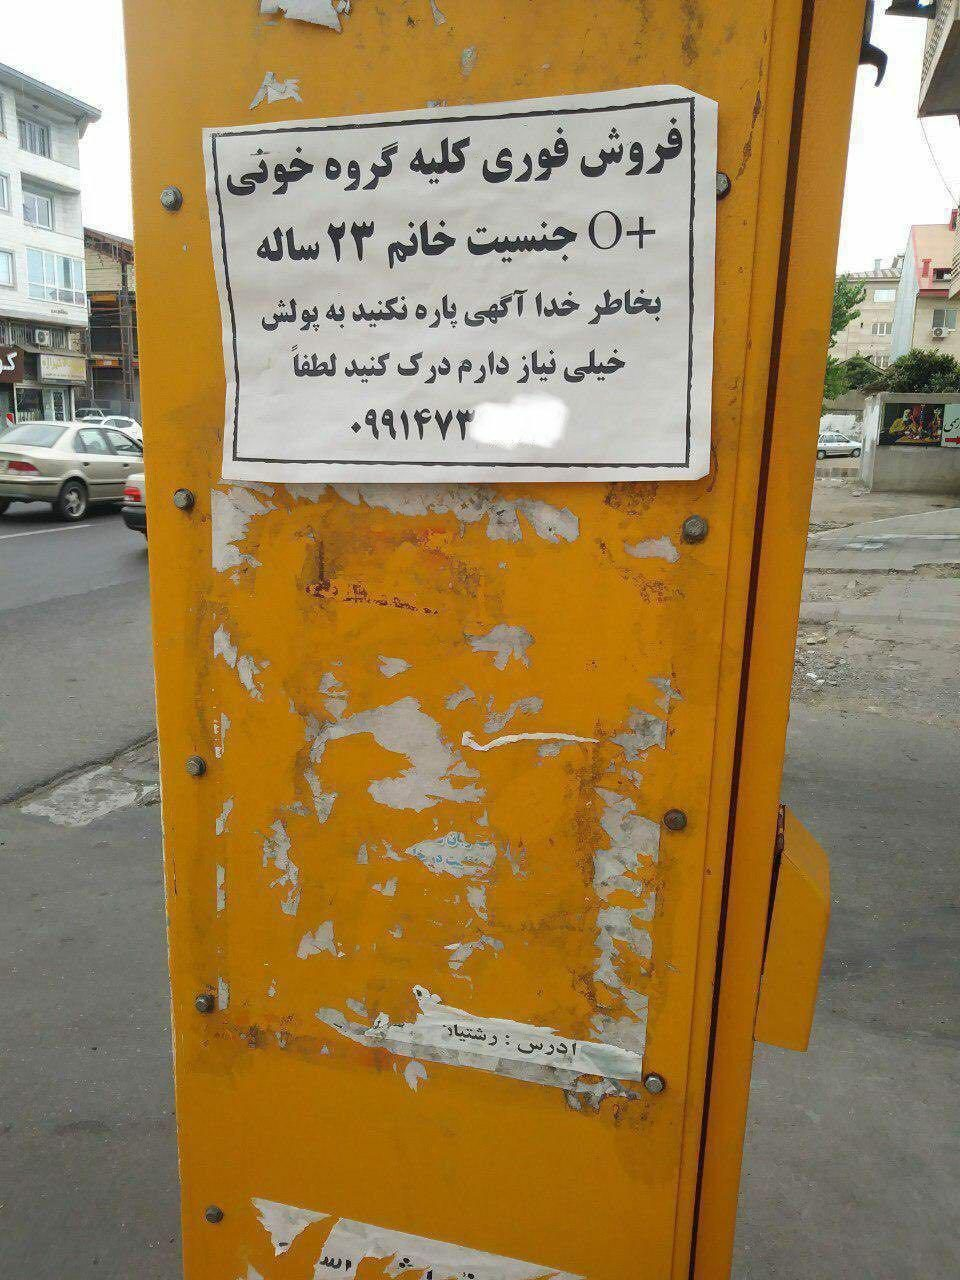 Iranians selling organs to survive